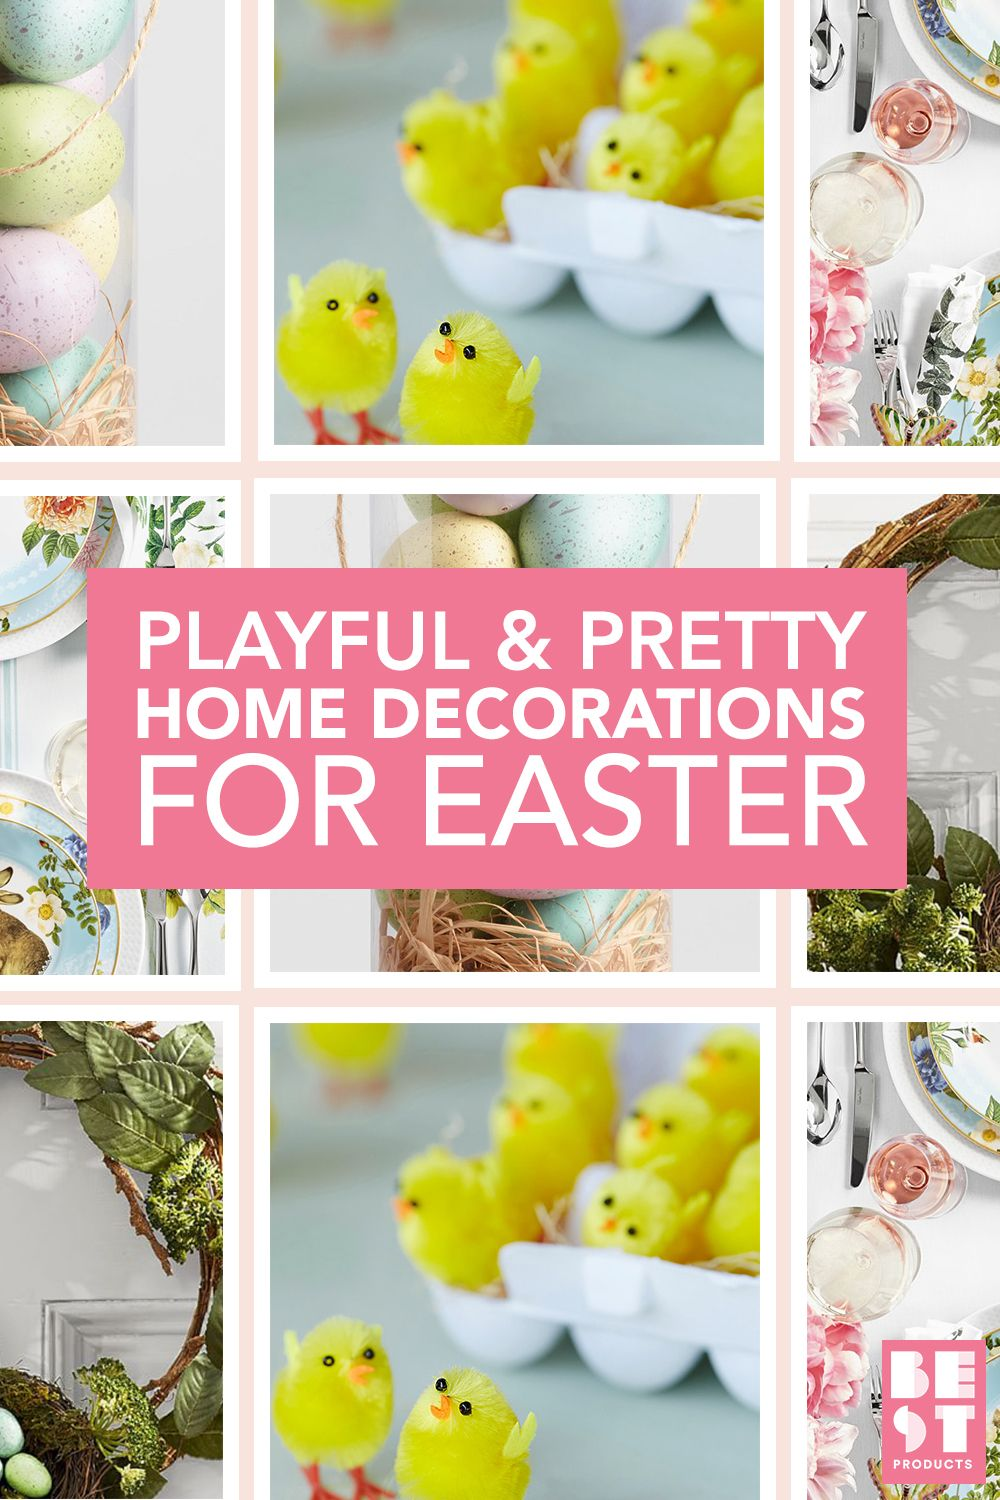 15 Best Easter Decorations for 2018 - Easter Decorating Ideas for ...